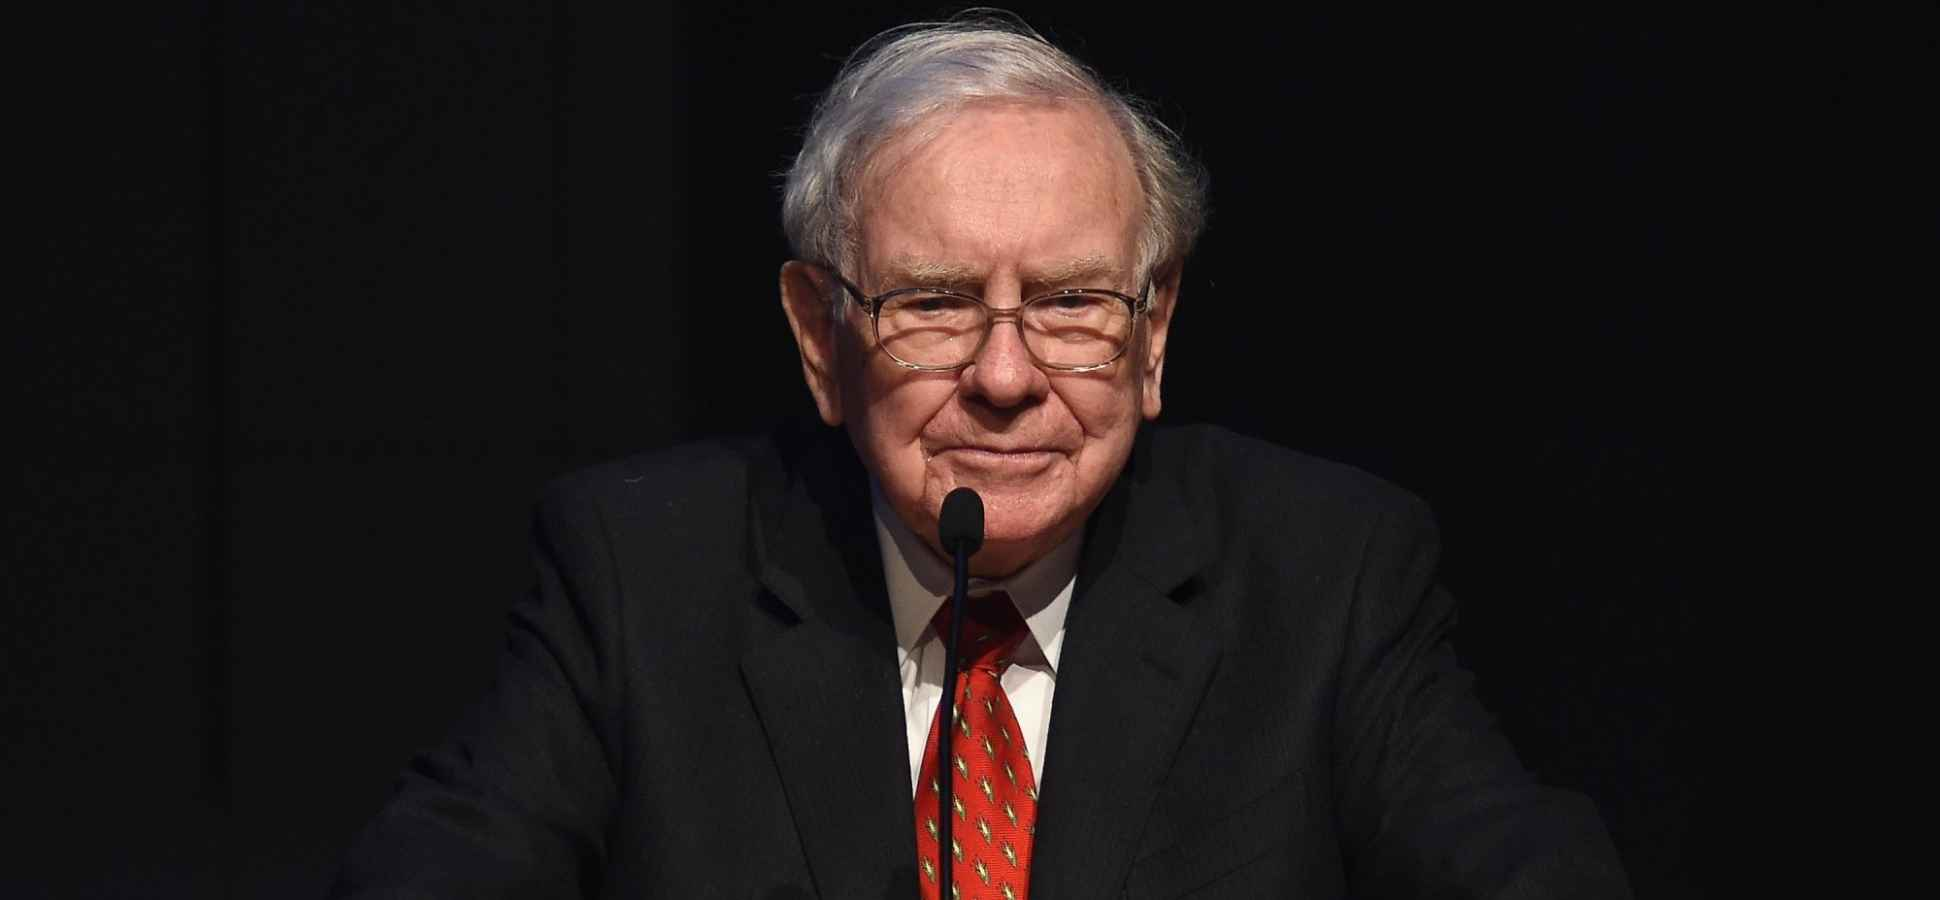 Warren Buffett's Secret Trick to Persuasion Revealed (It's Not What You Think)